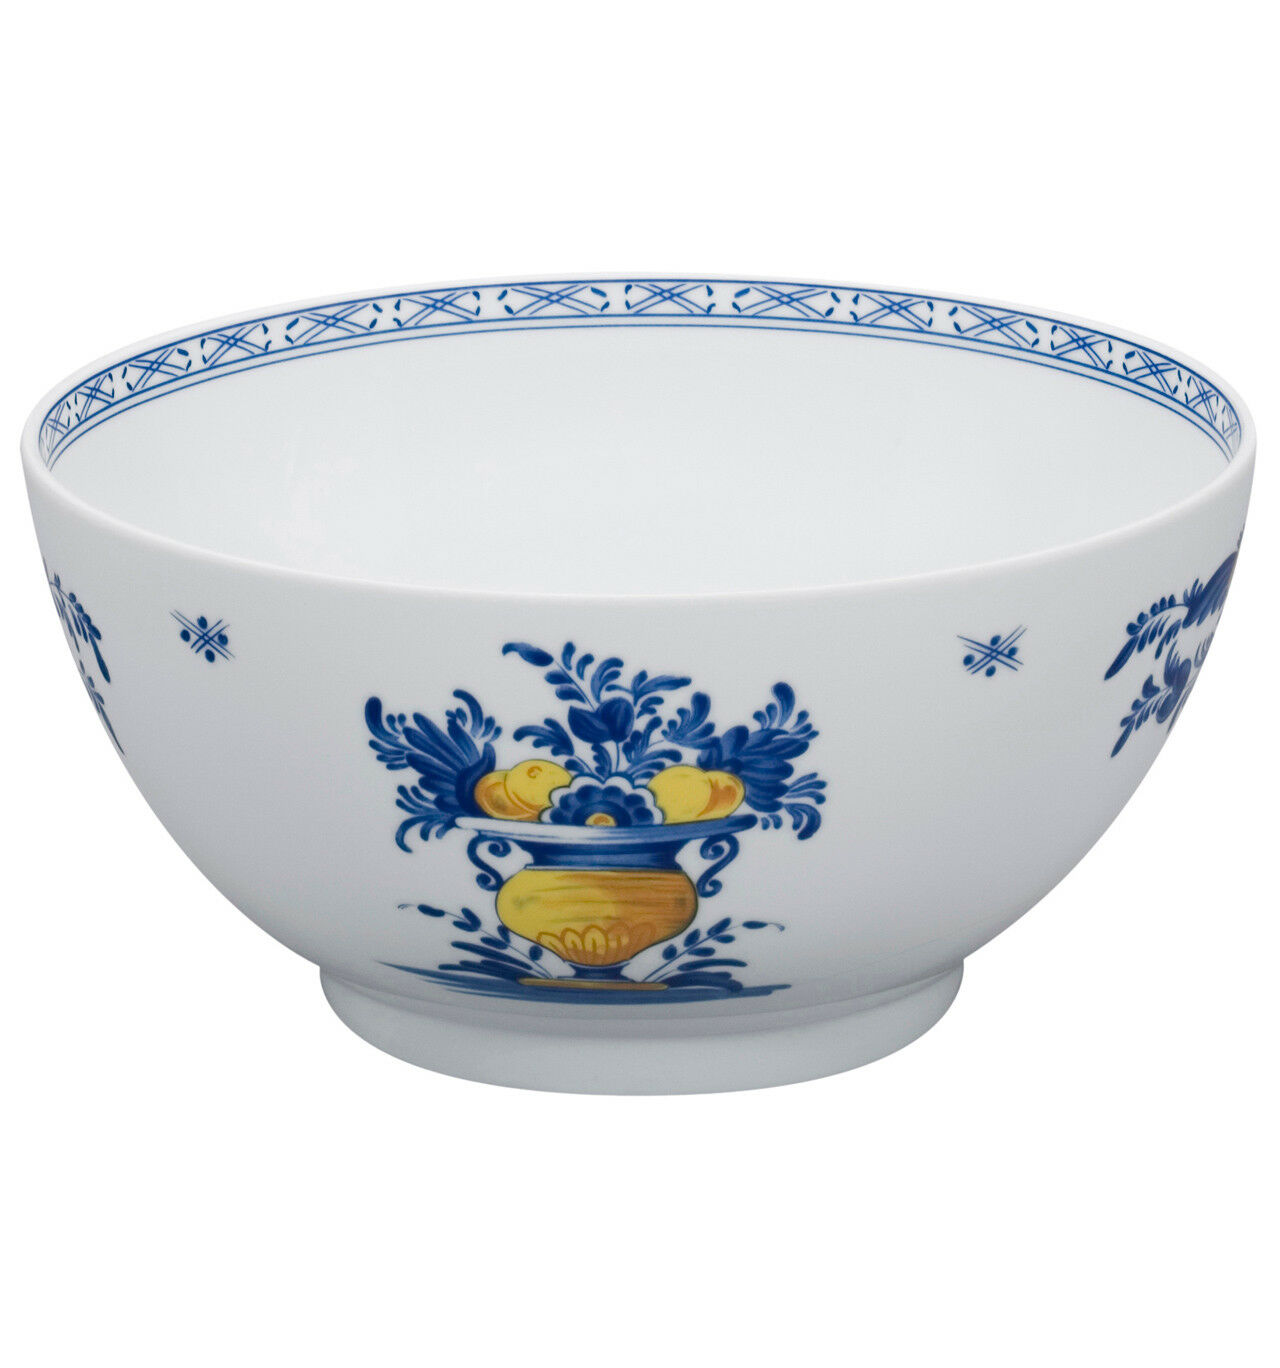 Vista Alegre Viana Round Bowl-Lot de 2